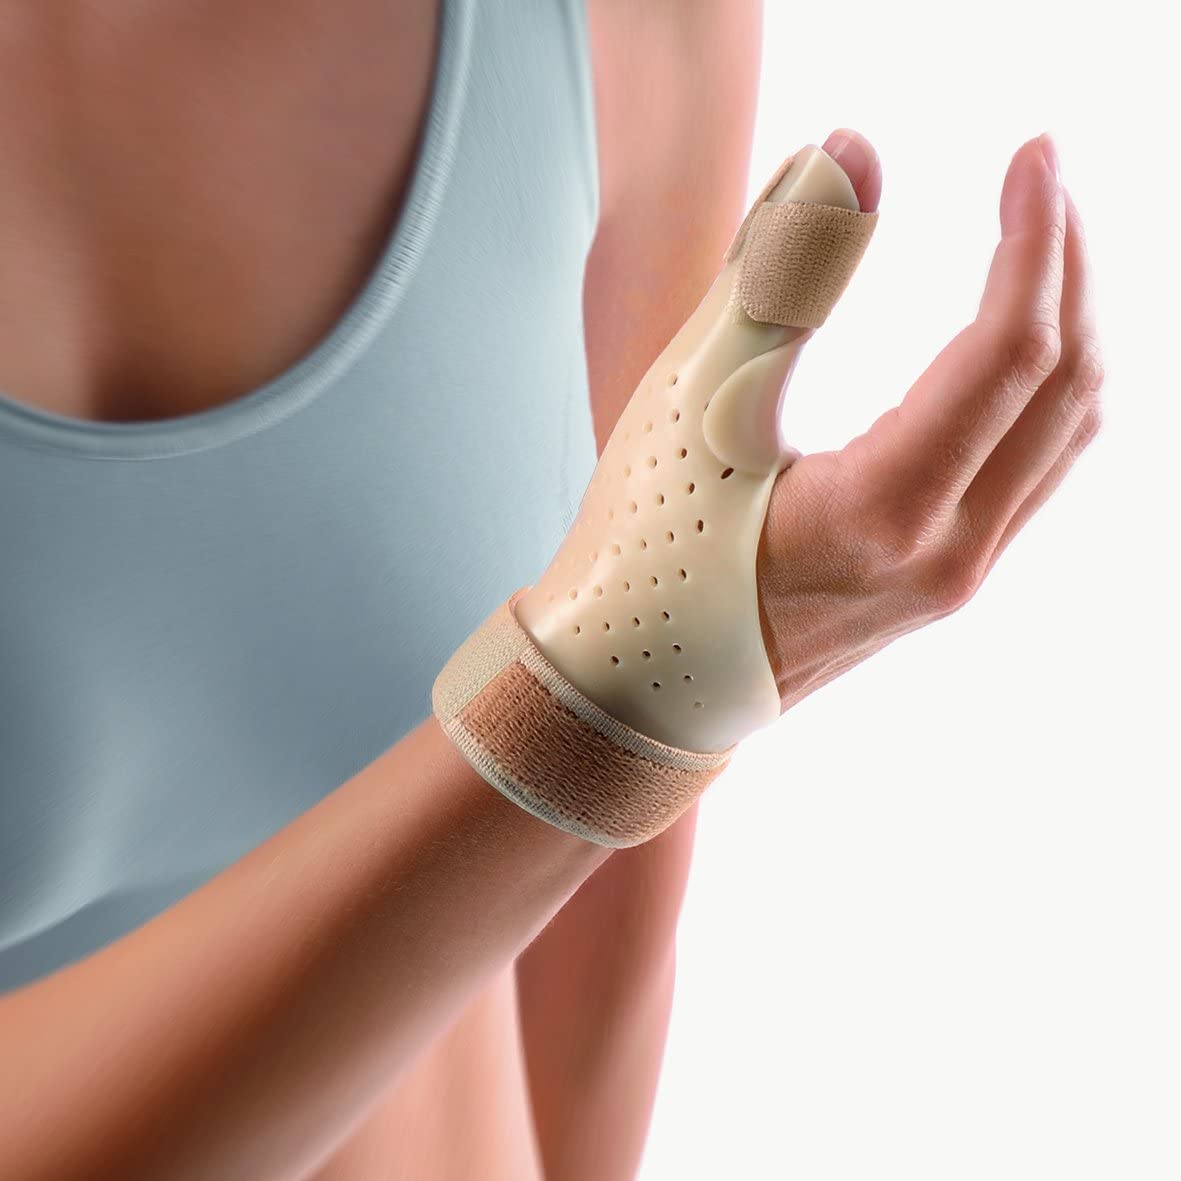 "B0041M2UL0 Bort De Quervain's Tenosynovitis Brace 112900 for Thumb Tendon, Trigger Thumb Heat Adjustable Medical Grade Made in Germany XSmall, Right= Up to 5.9"" 61Vs8sThQFL.SL1181_"